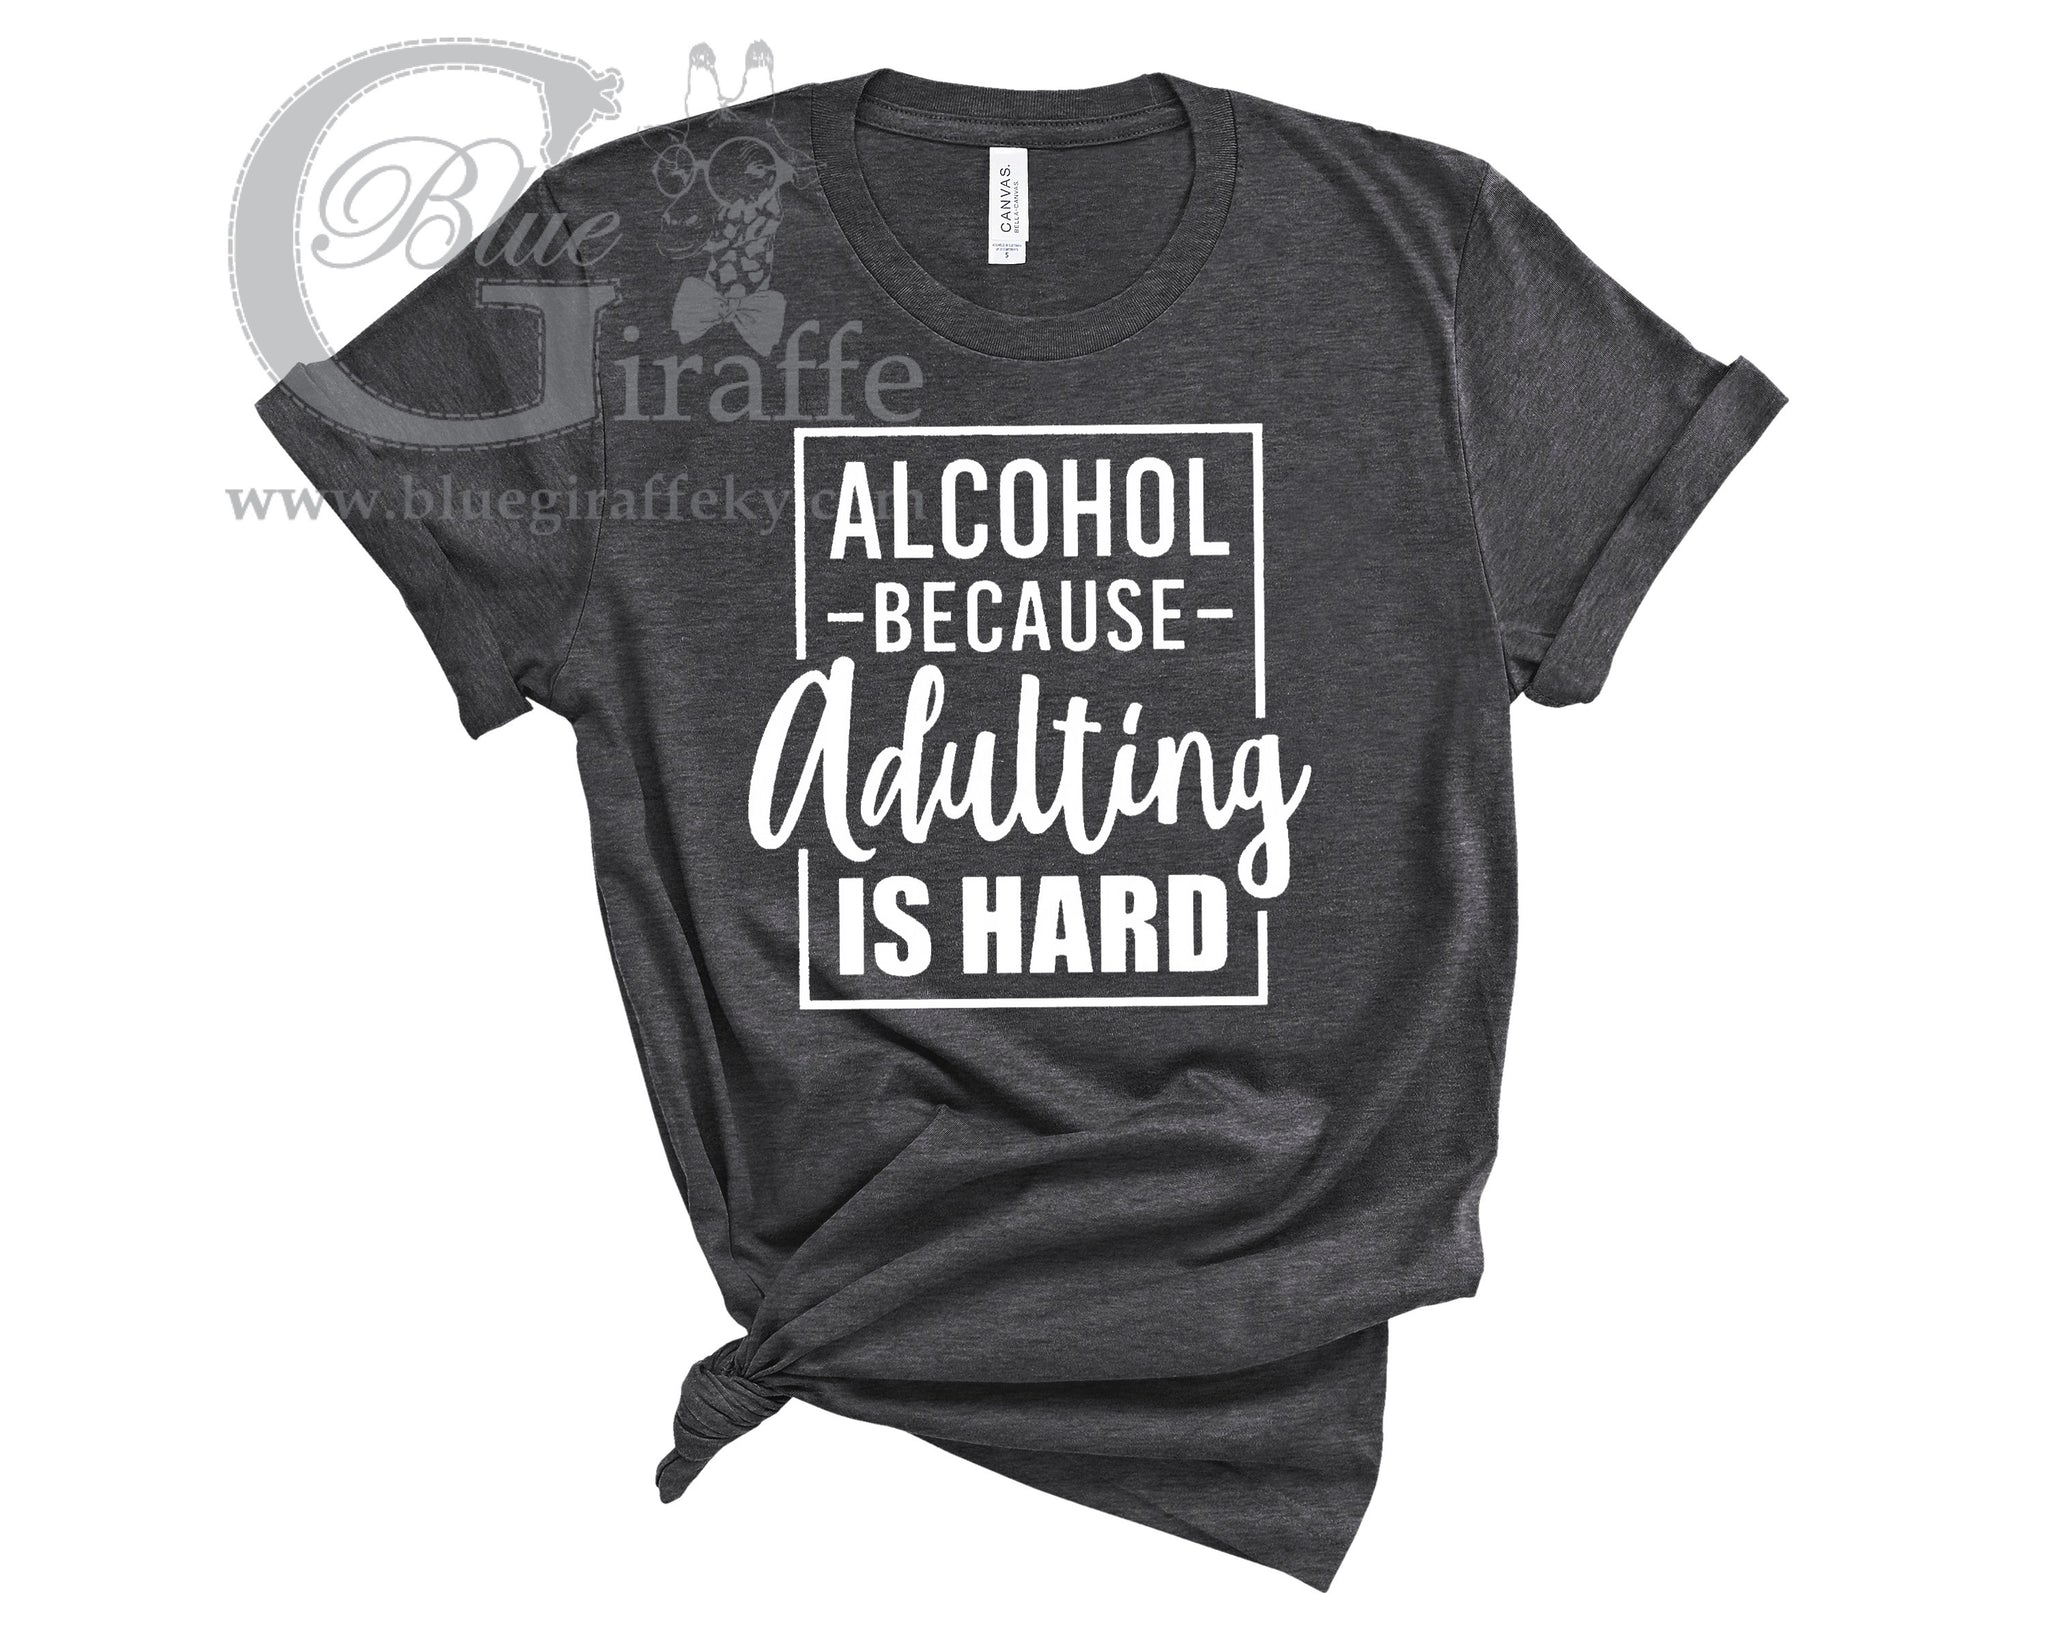 Adulting is Hard Tee